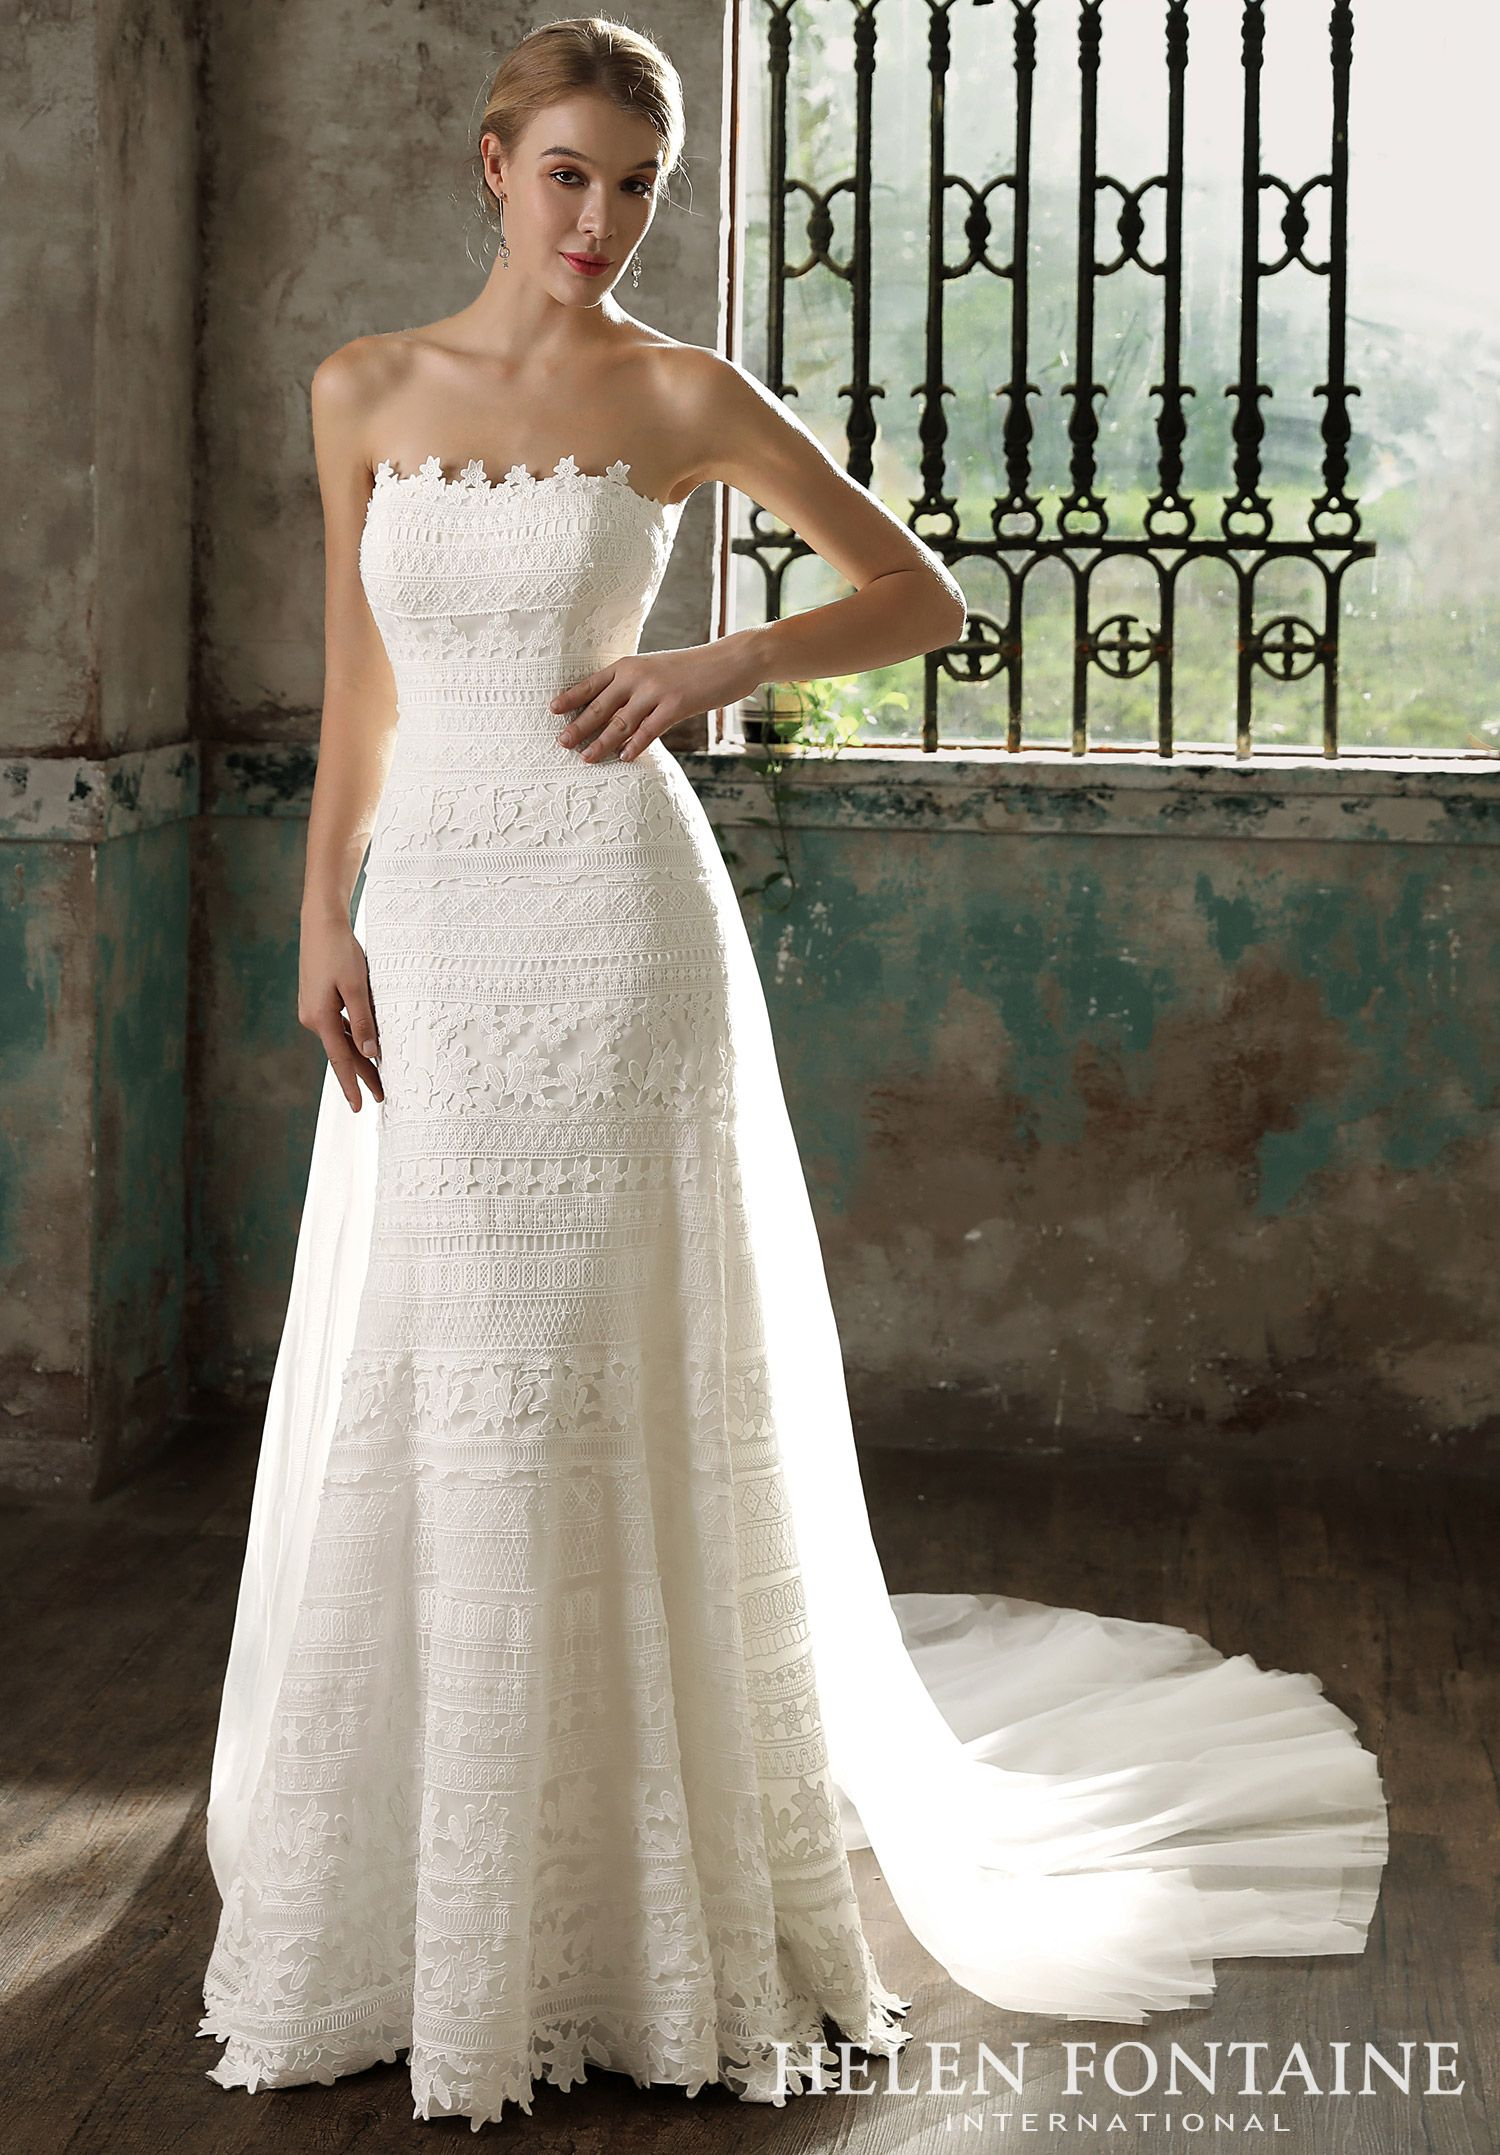 Detachable Tulle Train on a Floor Length Lace Strapless